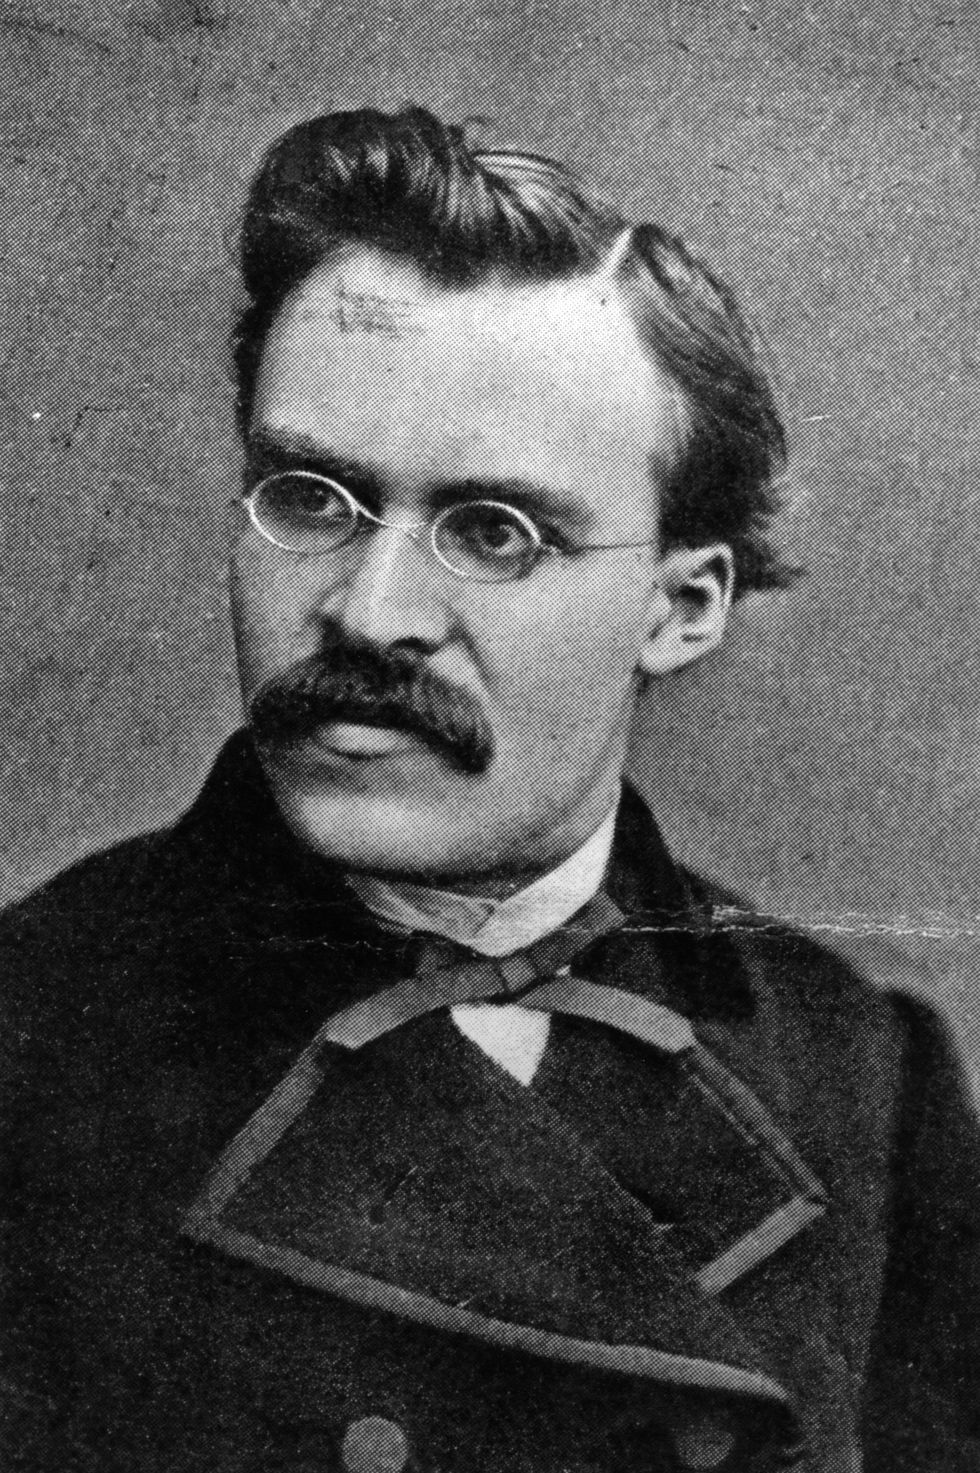 German philosopher and writer Friedrich Wilhelm Nietzsche (1844 - 1900)